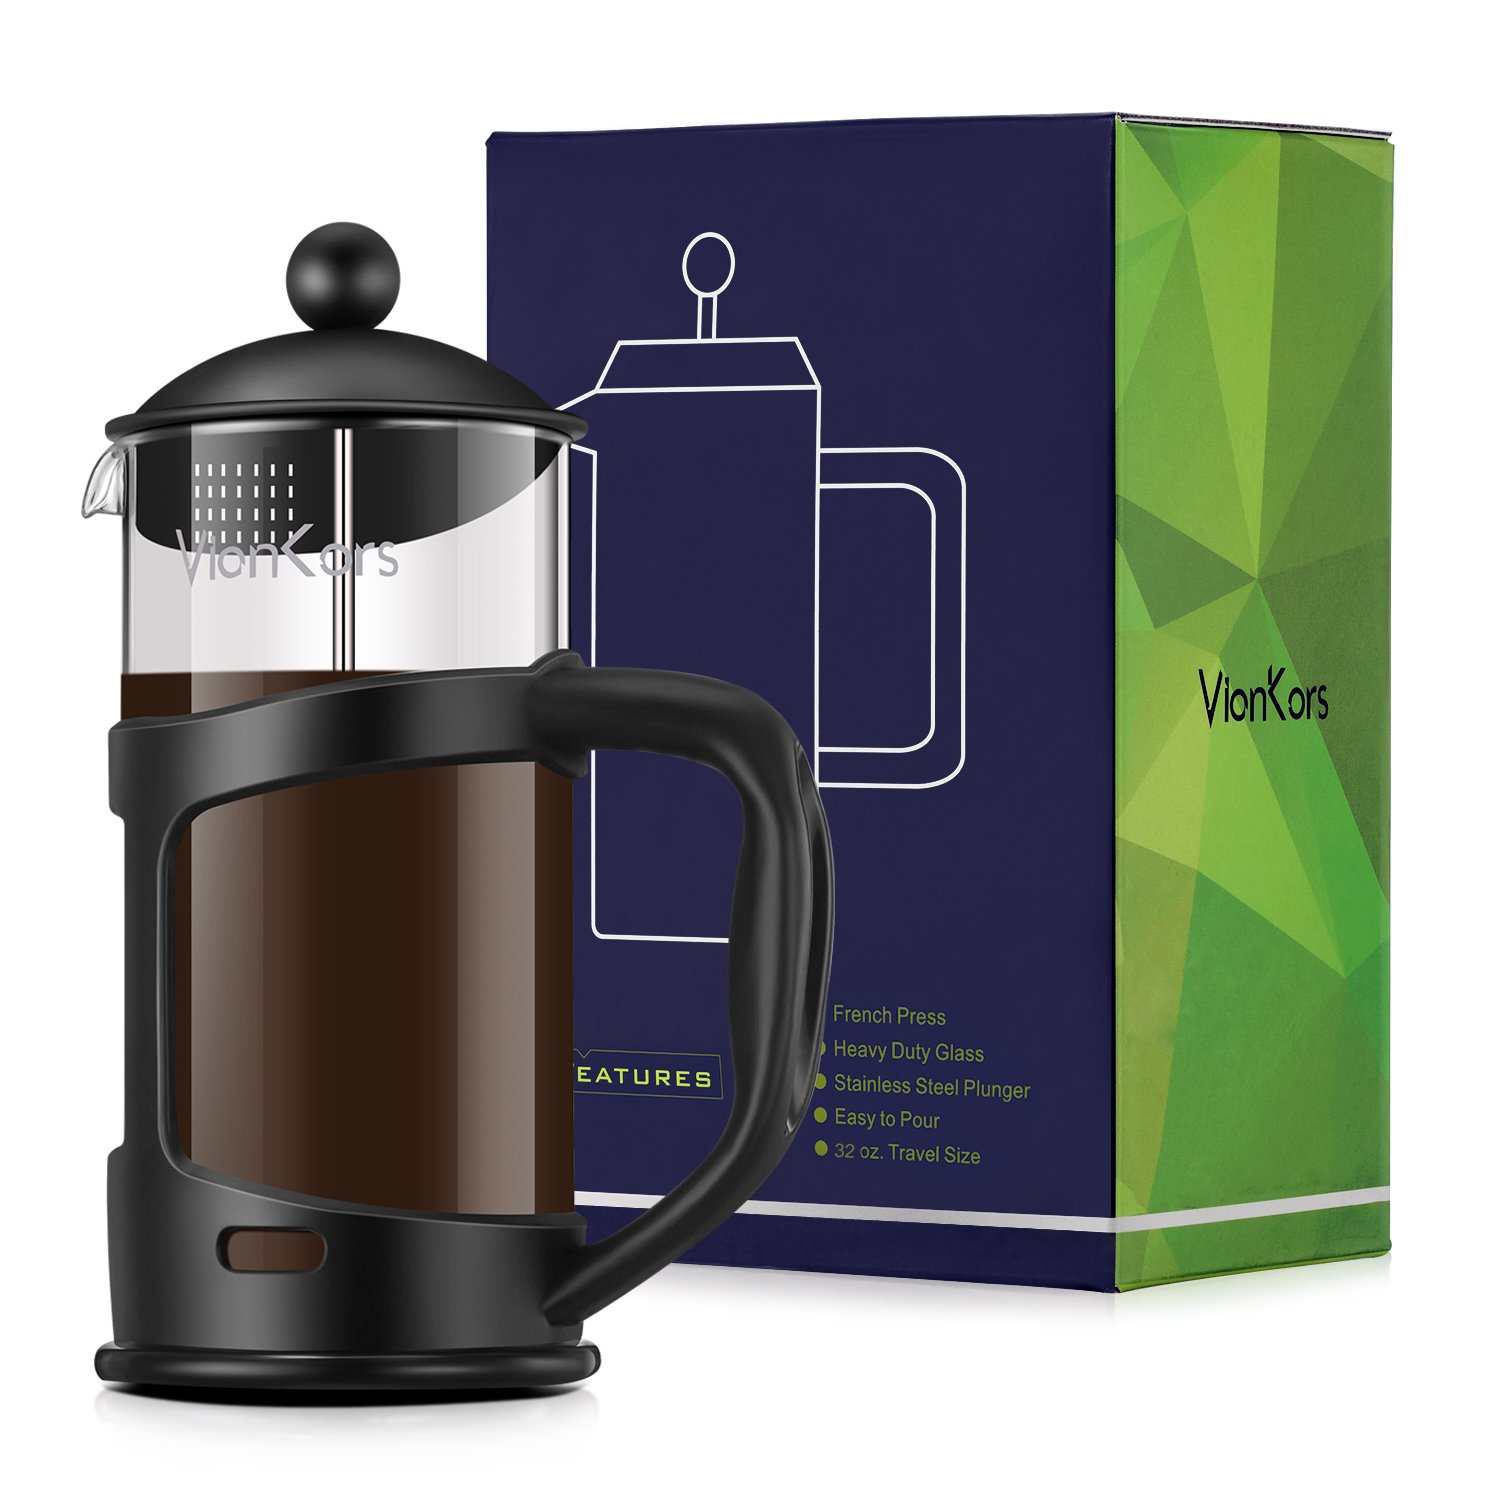 Glass French Press Coffee Maker - VIANKORS Coffee & Tea maker Family size (34 oz, 1000ml) Classic Collection Heat Resistant Borosilicate Glass Bonus Stainless Steel Screen Easy to clean